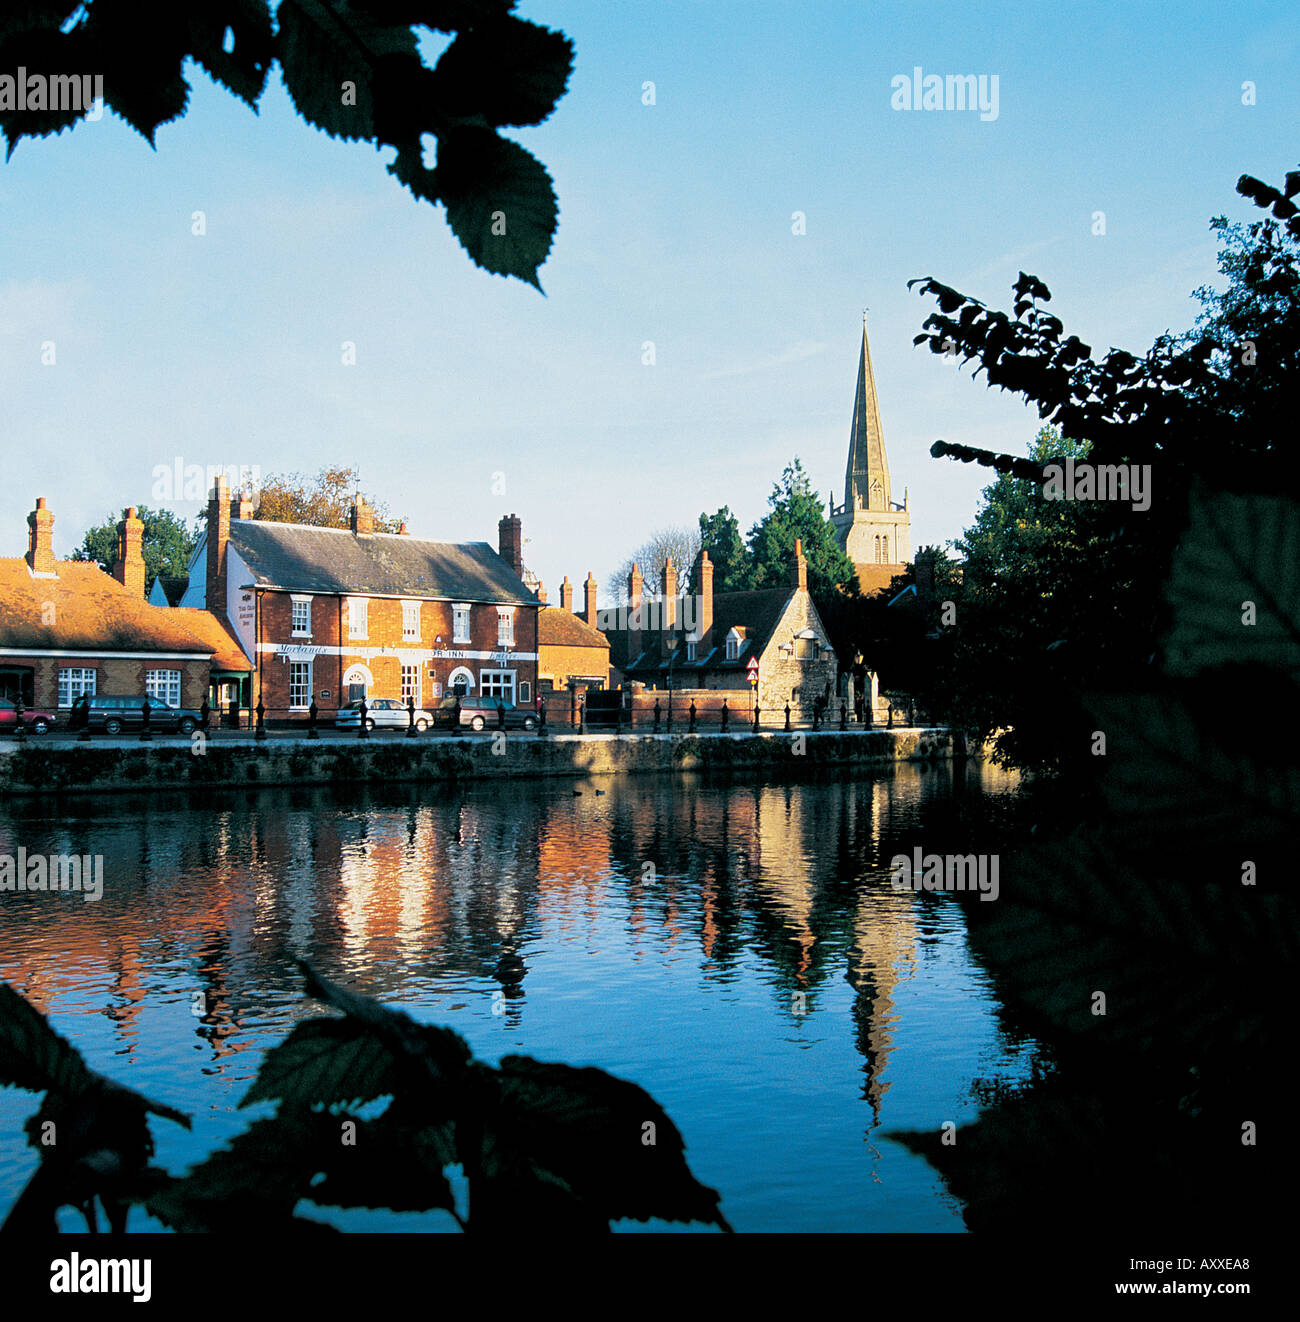 View of St Helens Church and Abingdon over The River Thames - Stock Image